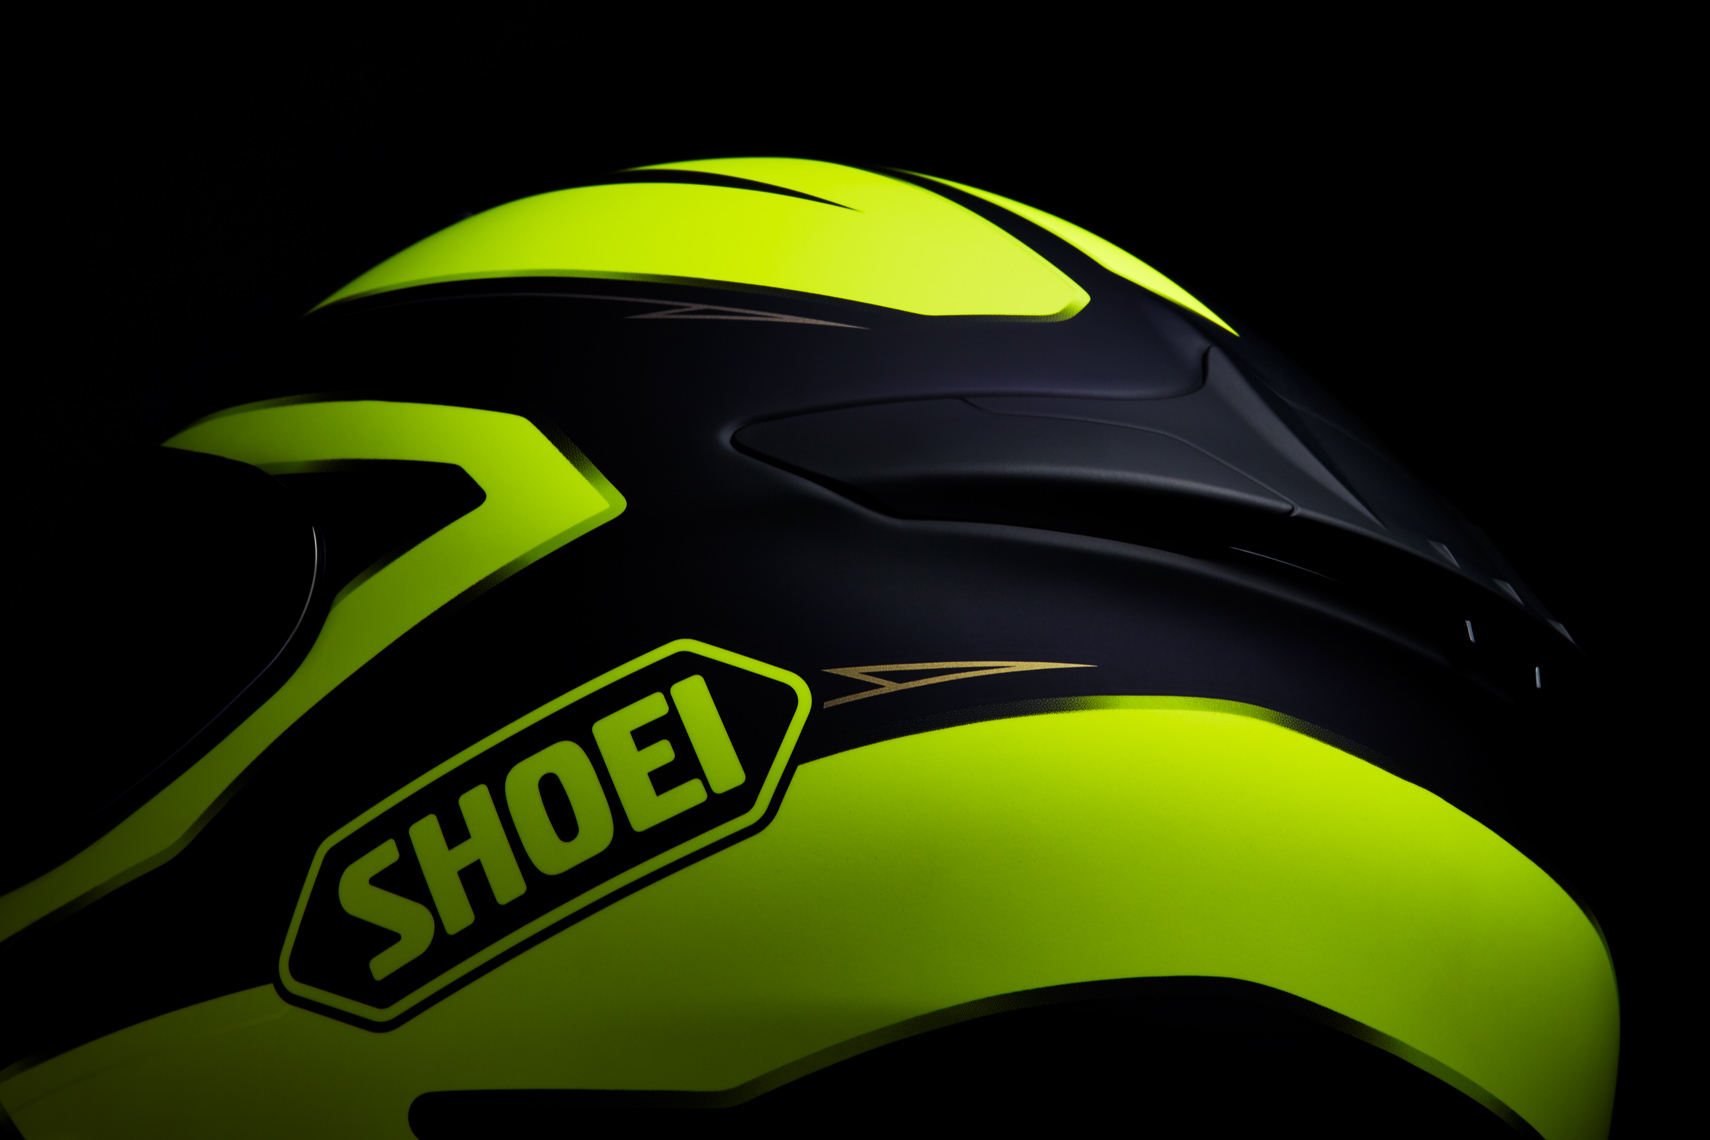 Product Photography Gear Shoei Road Racing Street Helmet Detail Saftey Yellow Green Denver